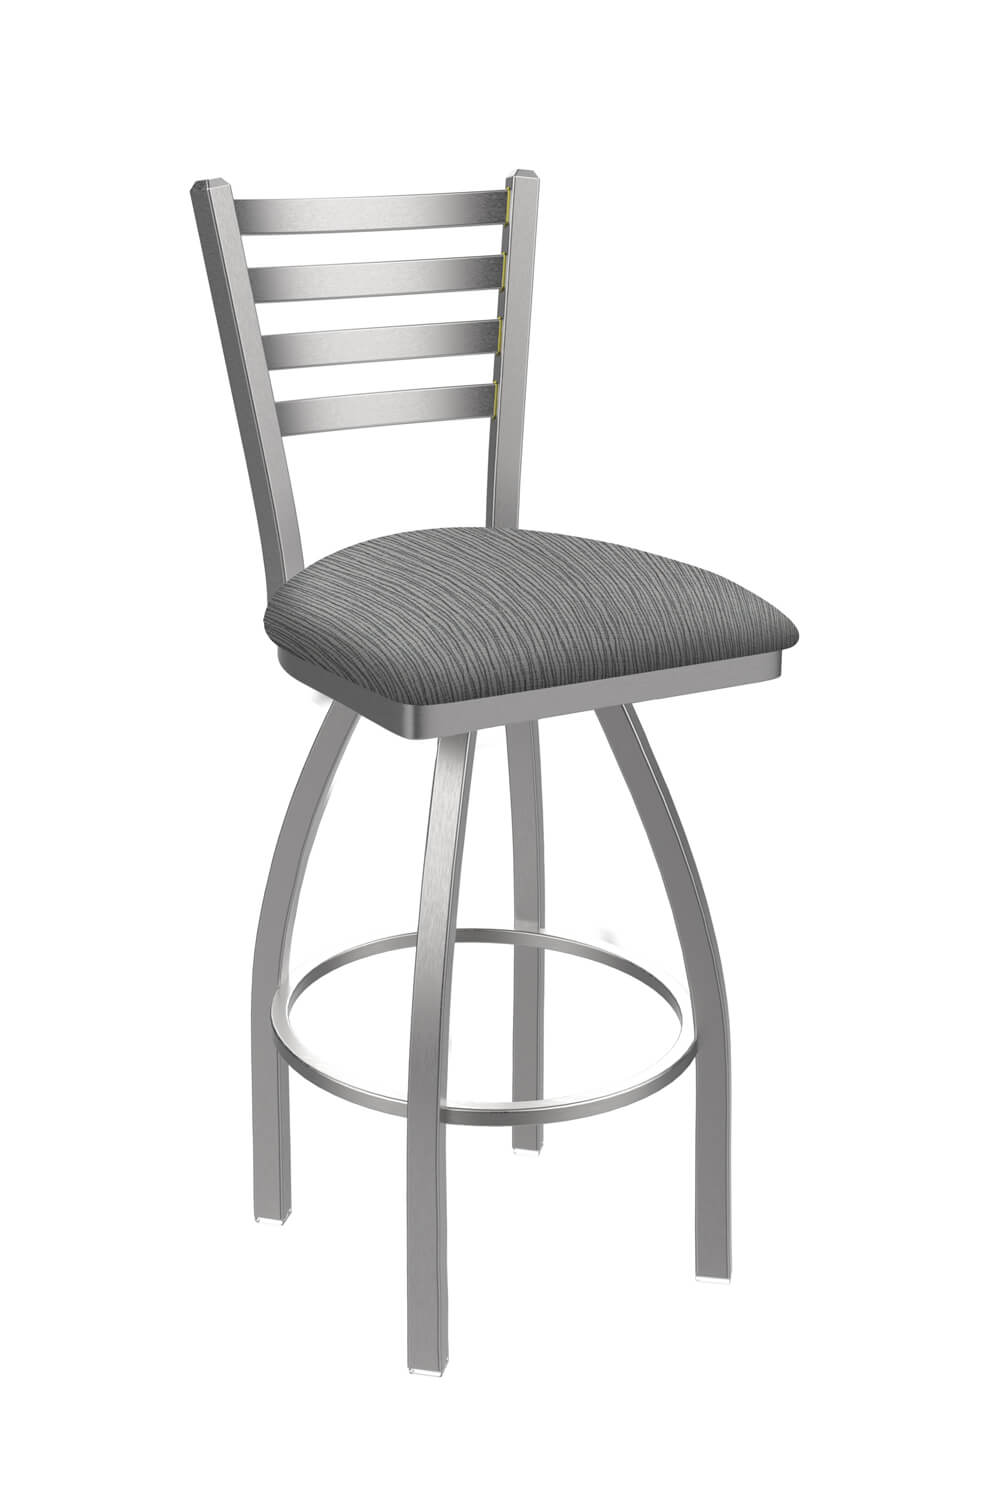 Wondrous Jackie Swivel Stool 410 Caraccident5 Cool Chair Designs And Ideas Caraccident5Info